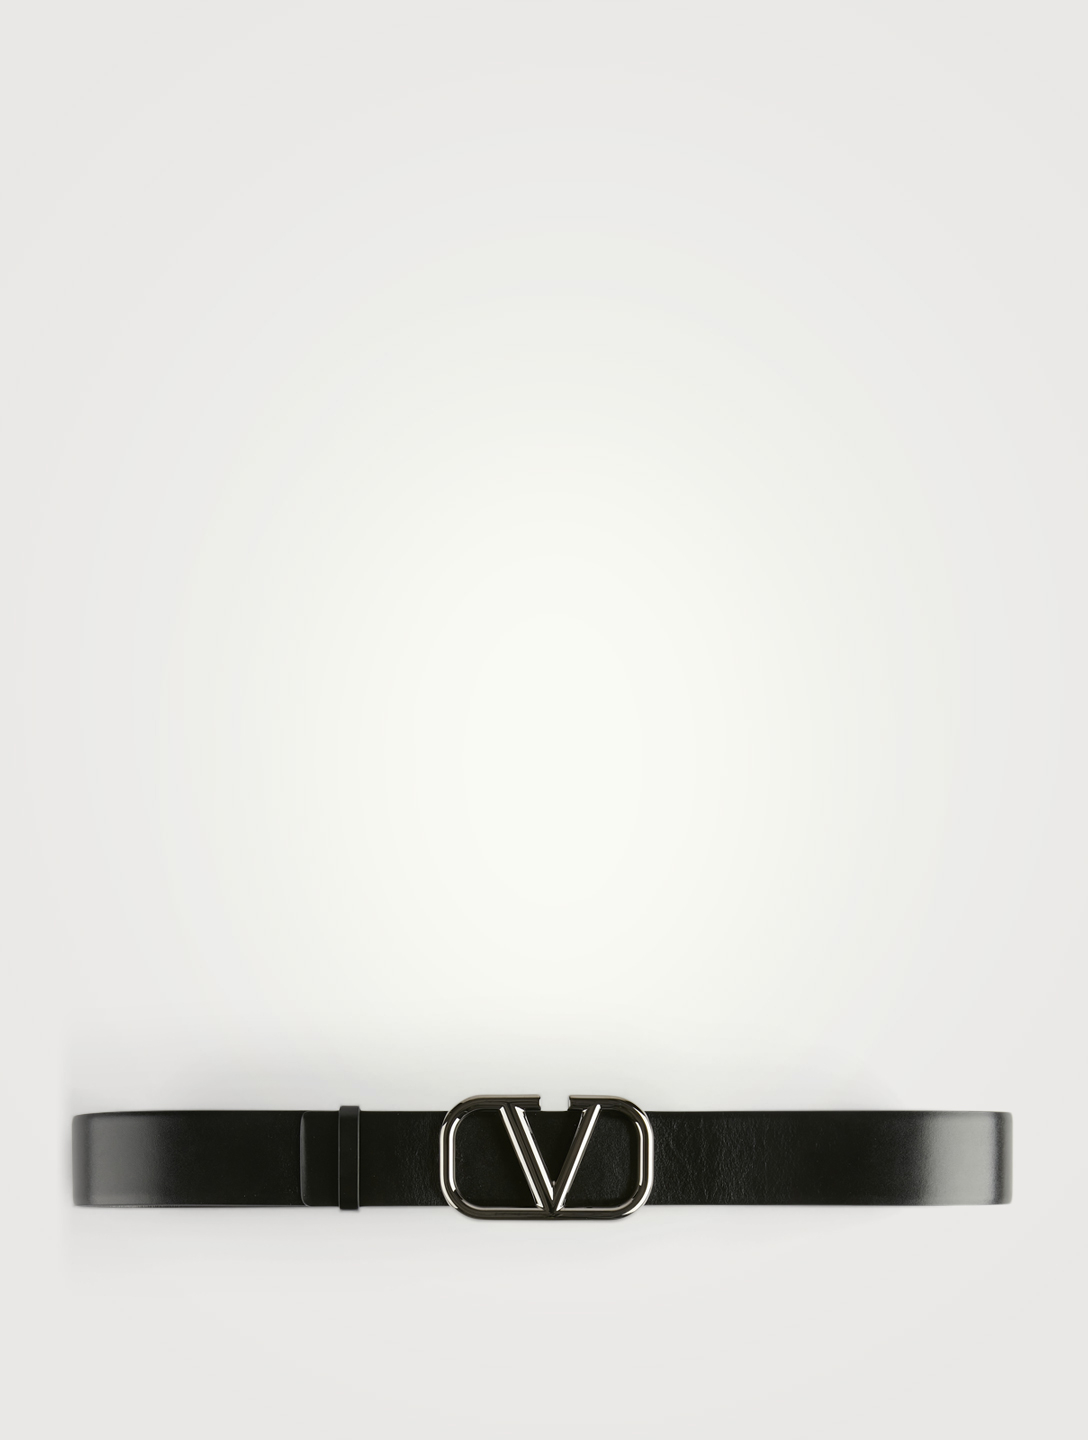 VALENTINO GARAVANI VLOGO Reversible Leather Belt Men's Black